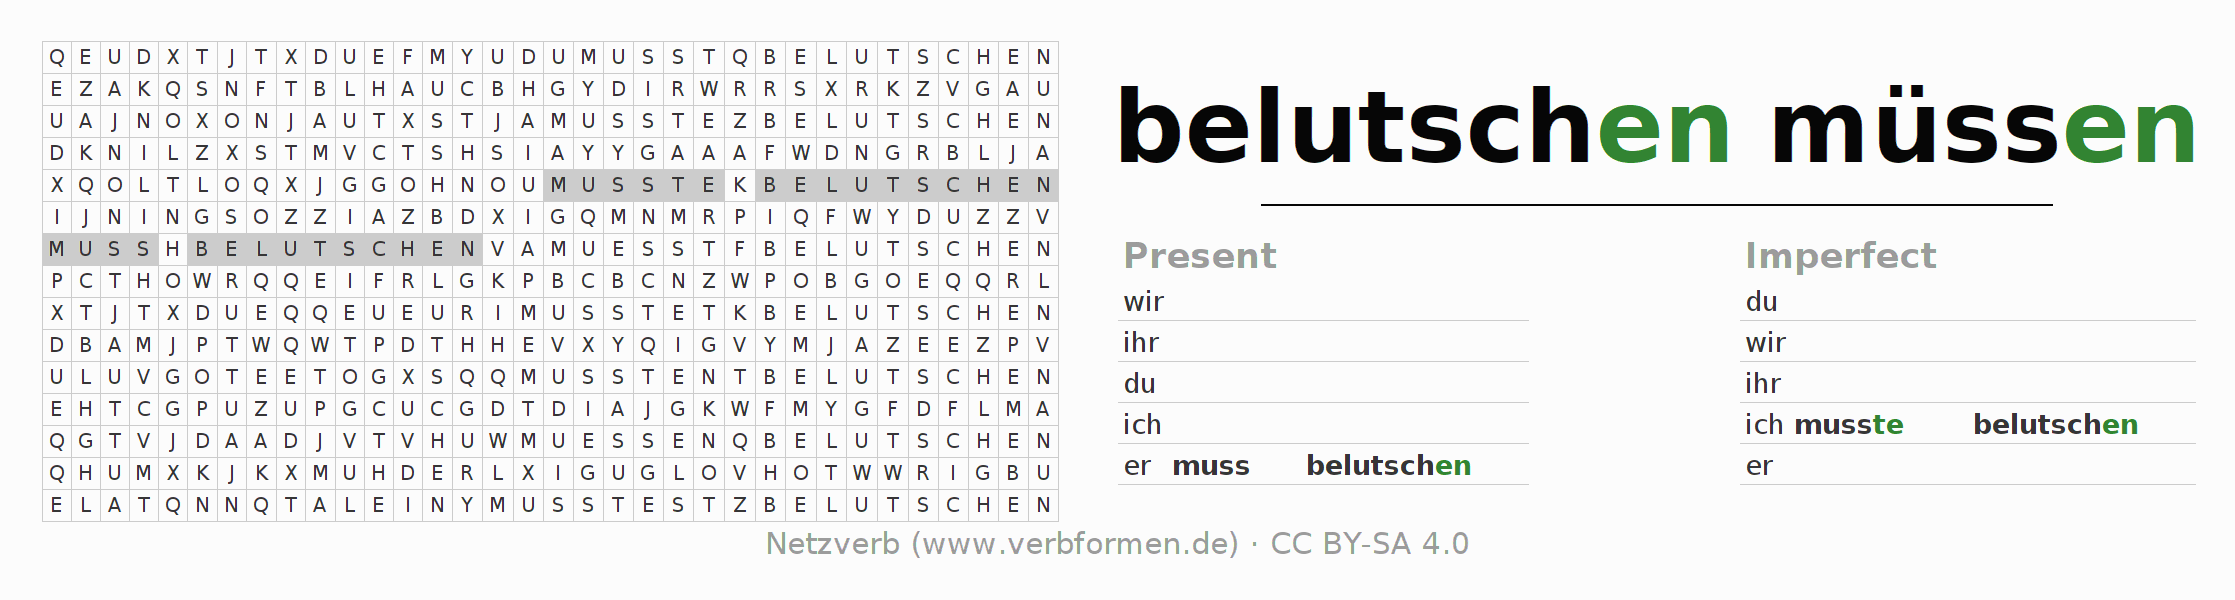 Word search puzzle for the conjugation of the verb muss belutschen